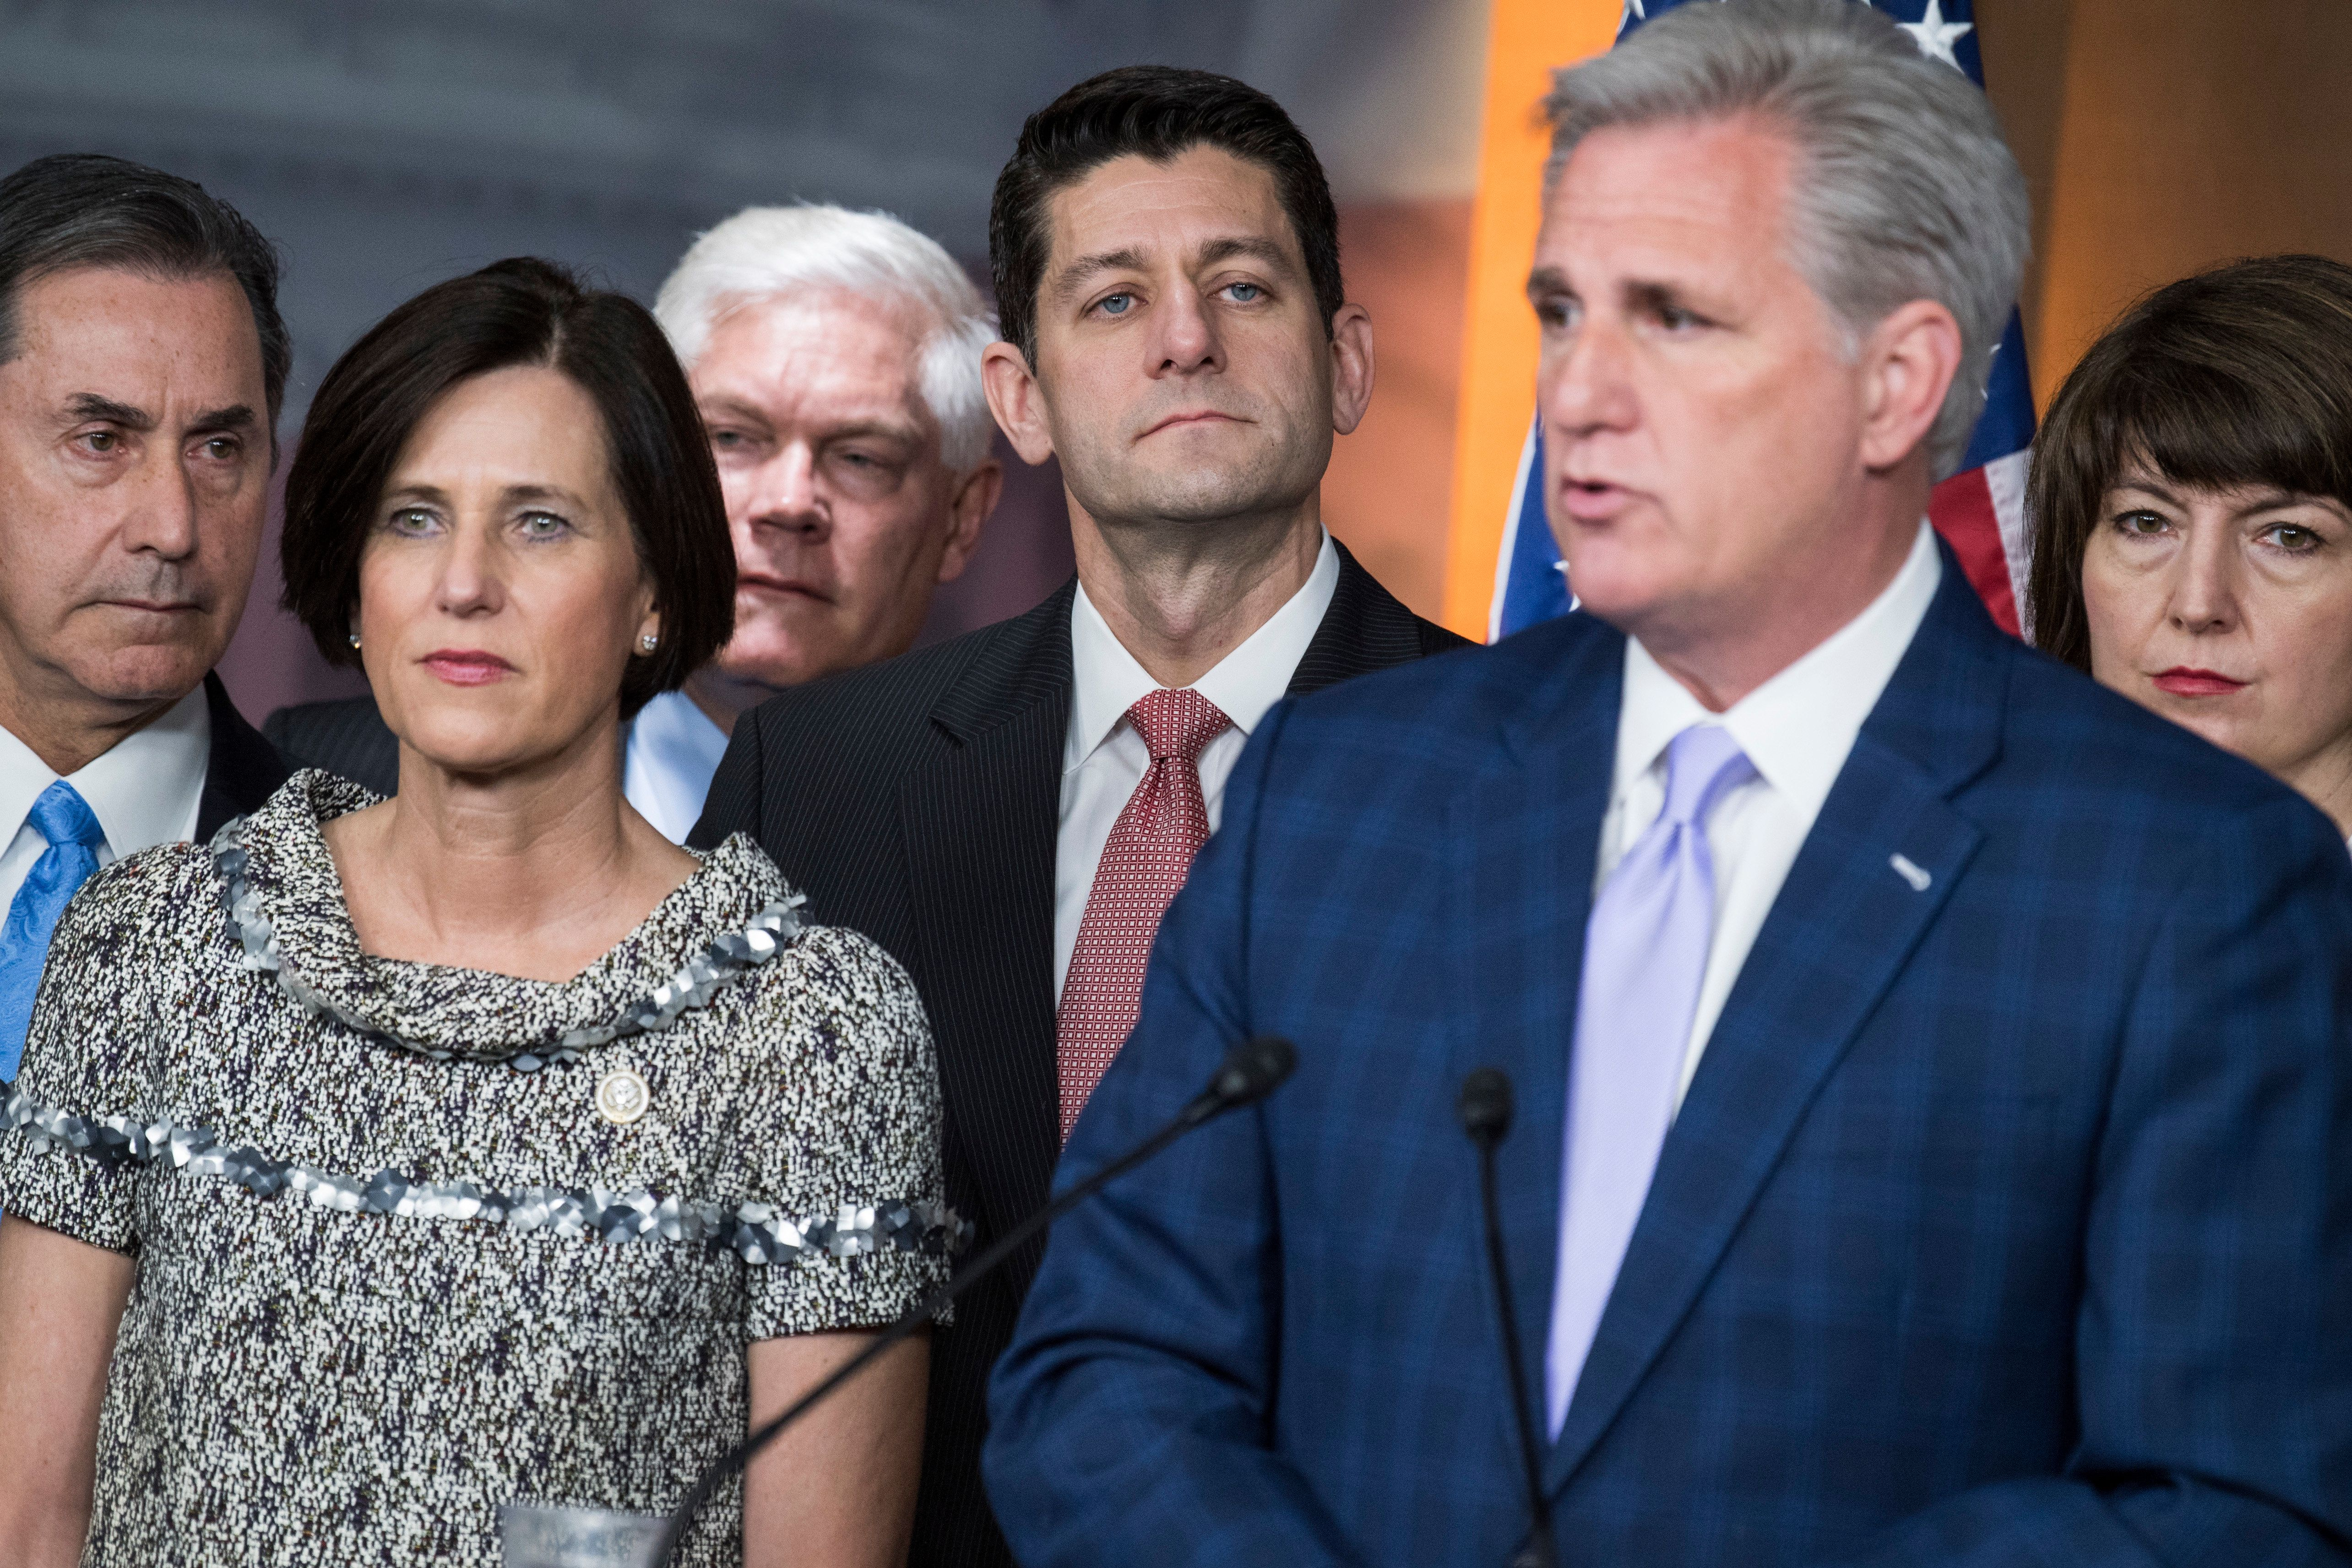 UNITED STATES - APRIL 6: From left, Reps. Gary Palmer, R-Ala., Mimi Walters, R-Calif., Pete Sessions, R-Texas, Speaker Paul Ryan, R-Wis., House Majority Leader Kevin McCarthy, R-Calif., and Rep. Cathy McMorris Rodgers, R-Wash., conduct a news conference with members the GOP caucus in the Capitol Visitor Center to announce a new amendment to the health care bill to repeal and replace the ACA, April 6, 2017.(Photo By Tom Williams/CQ Roll Call)